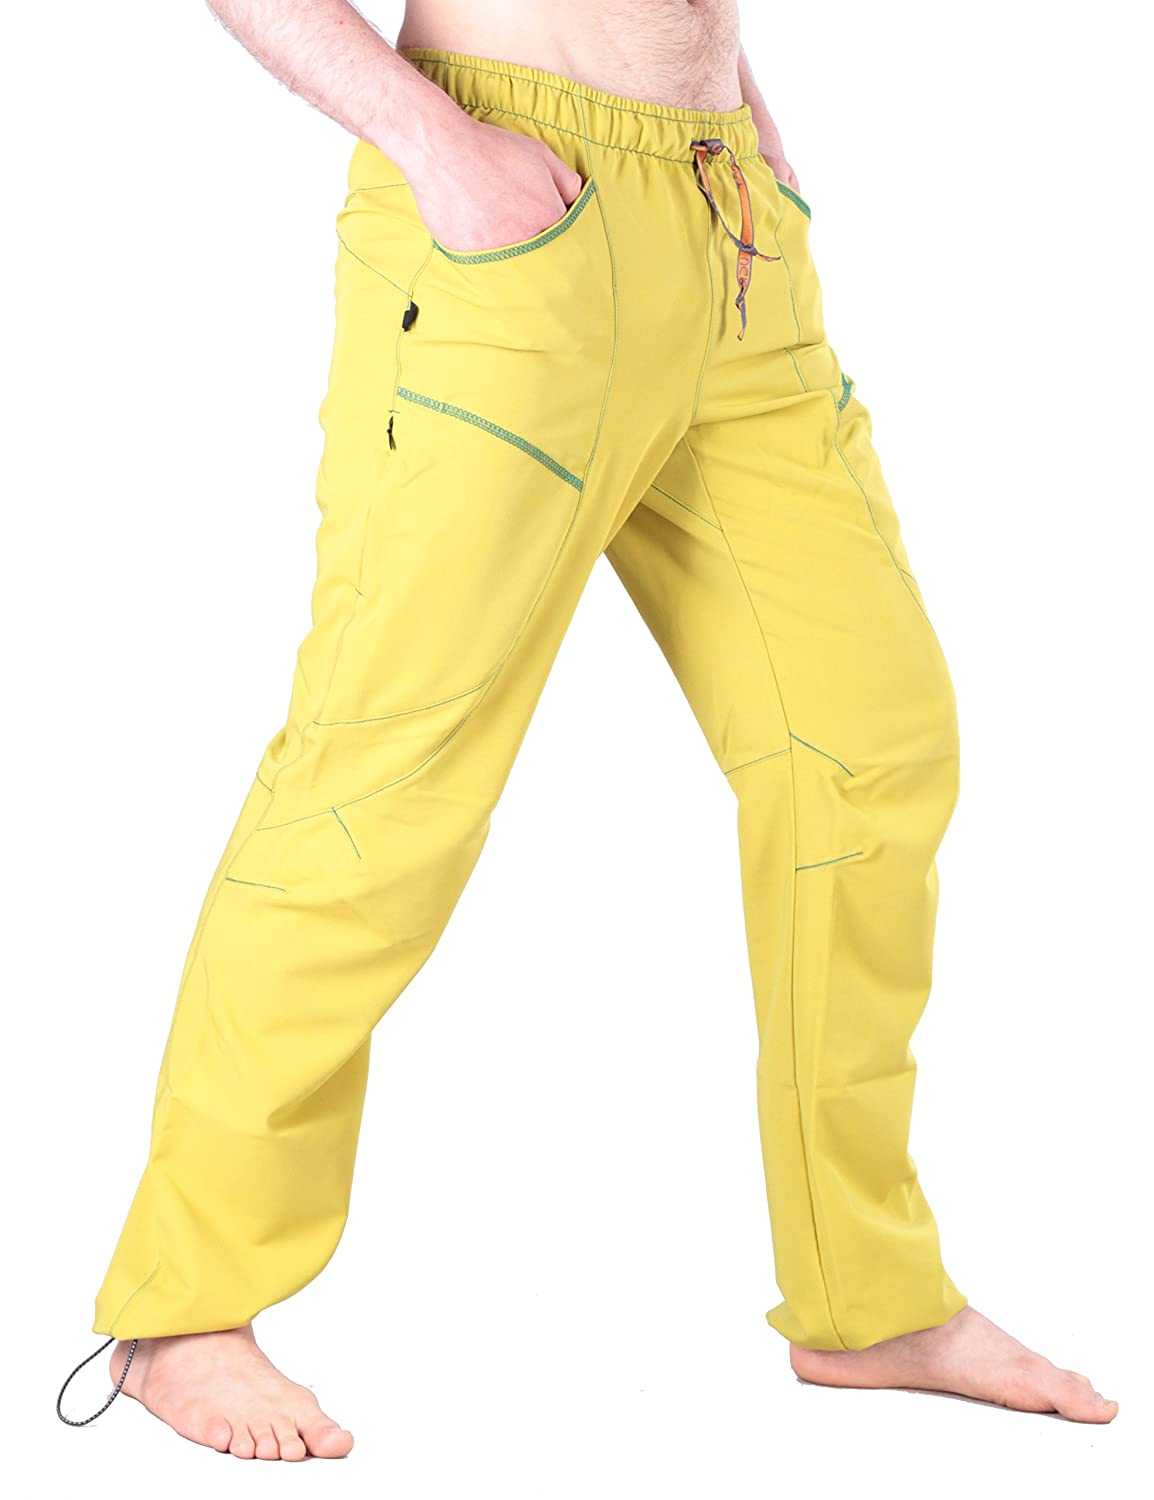 Ucraft Xlite Rock Climbing Bouldering and Yoga Pants Lightweight Stretchy Trousers